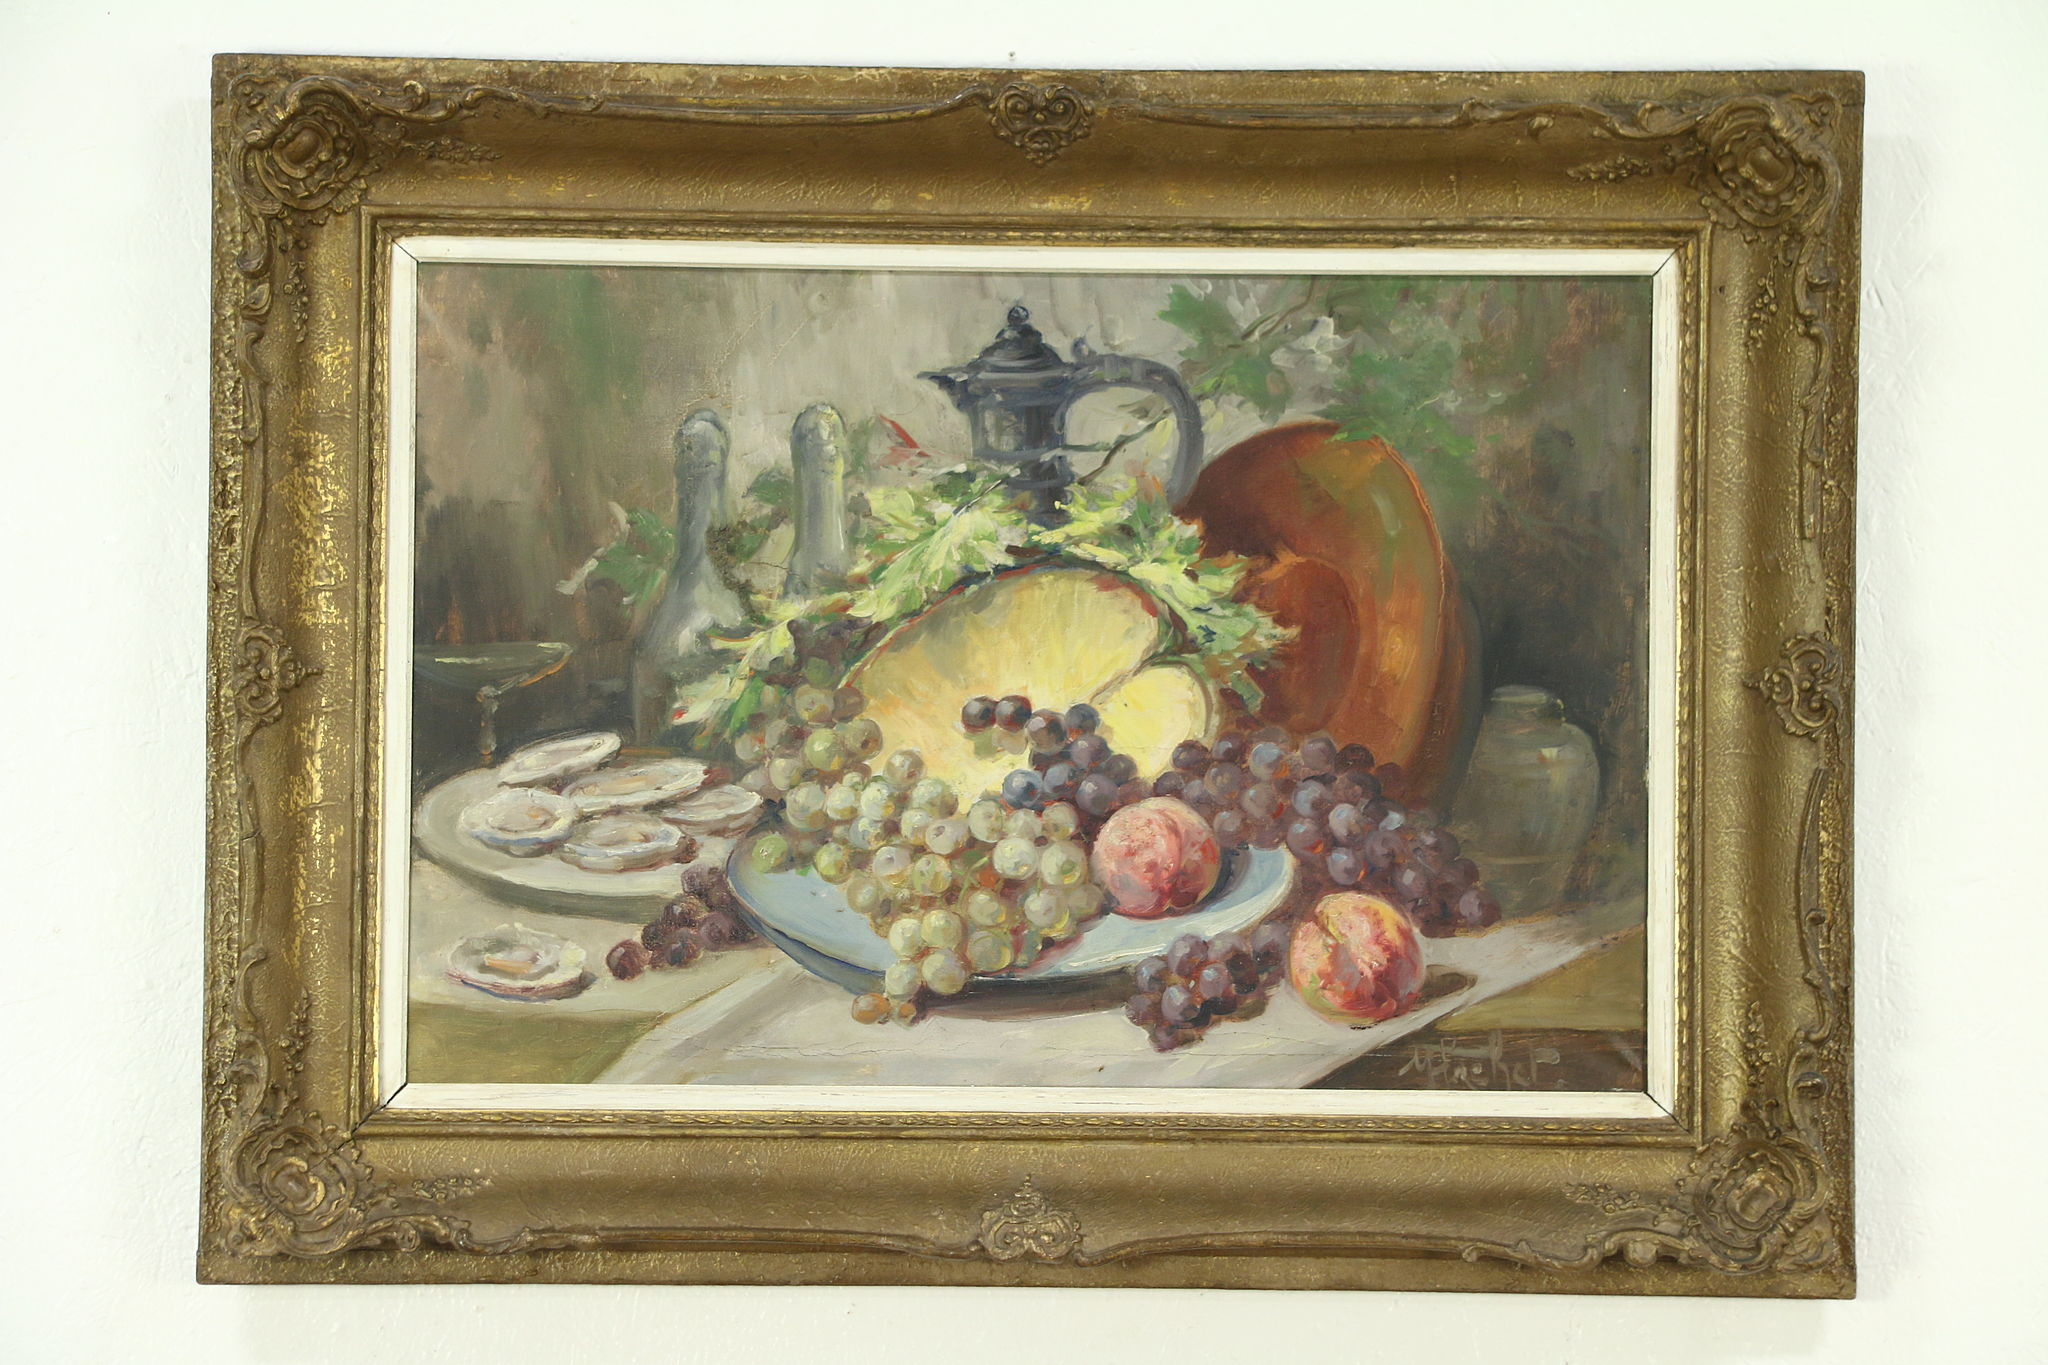 Oysters Amp Fruit Still Life Antique Oil Painting Carved Frame Signed France Harp